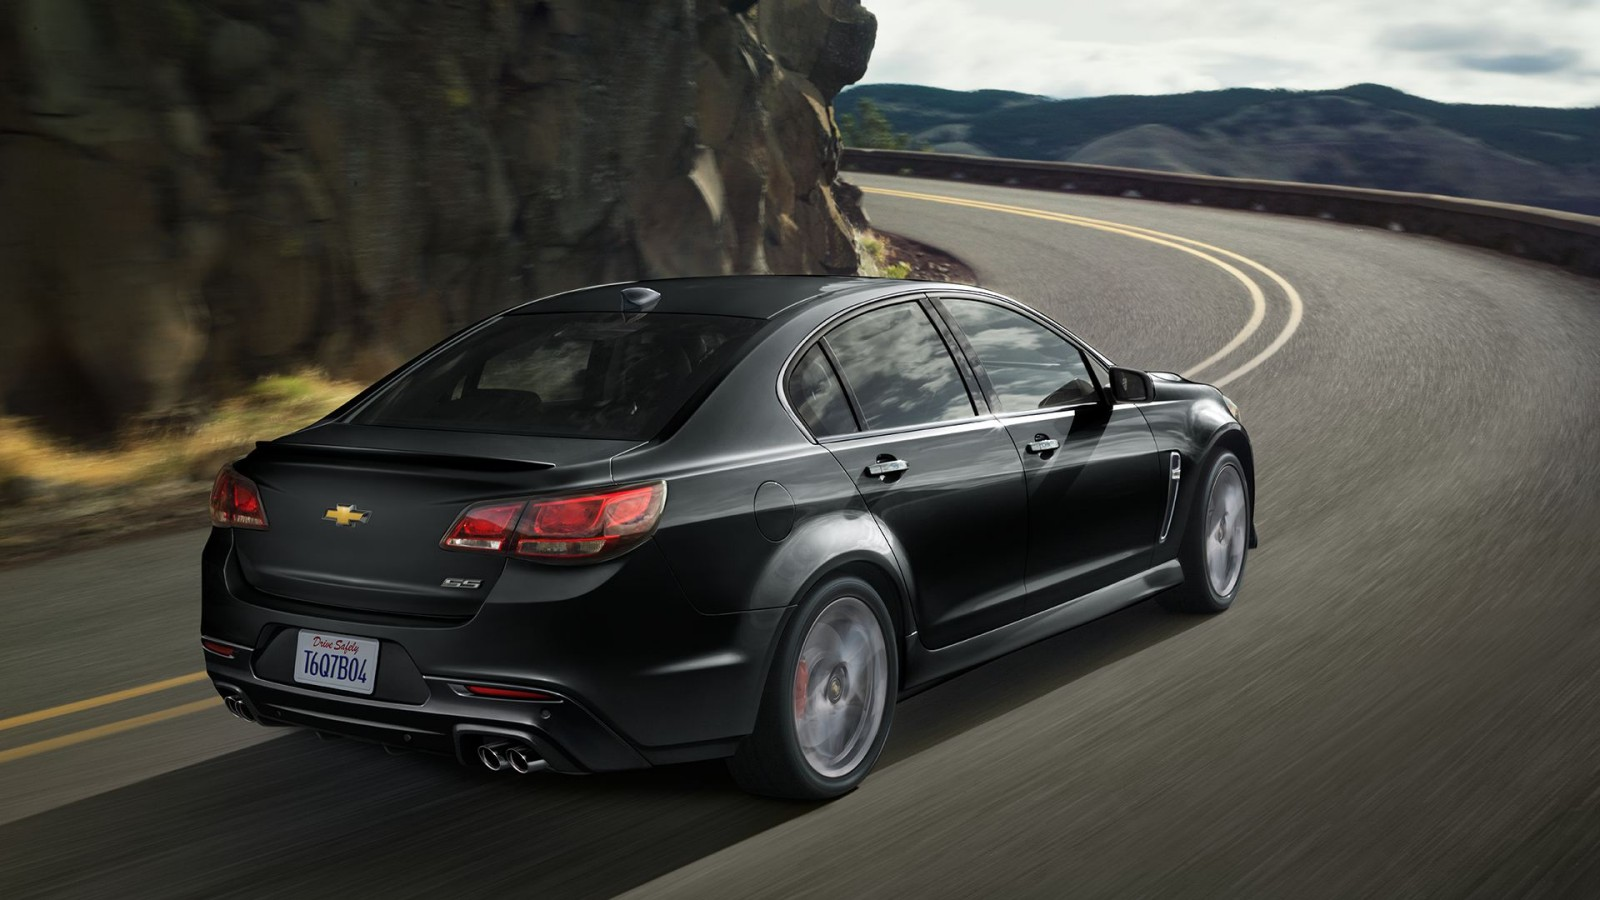 New Chevrolet SS Exterior image 1